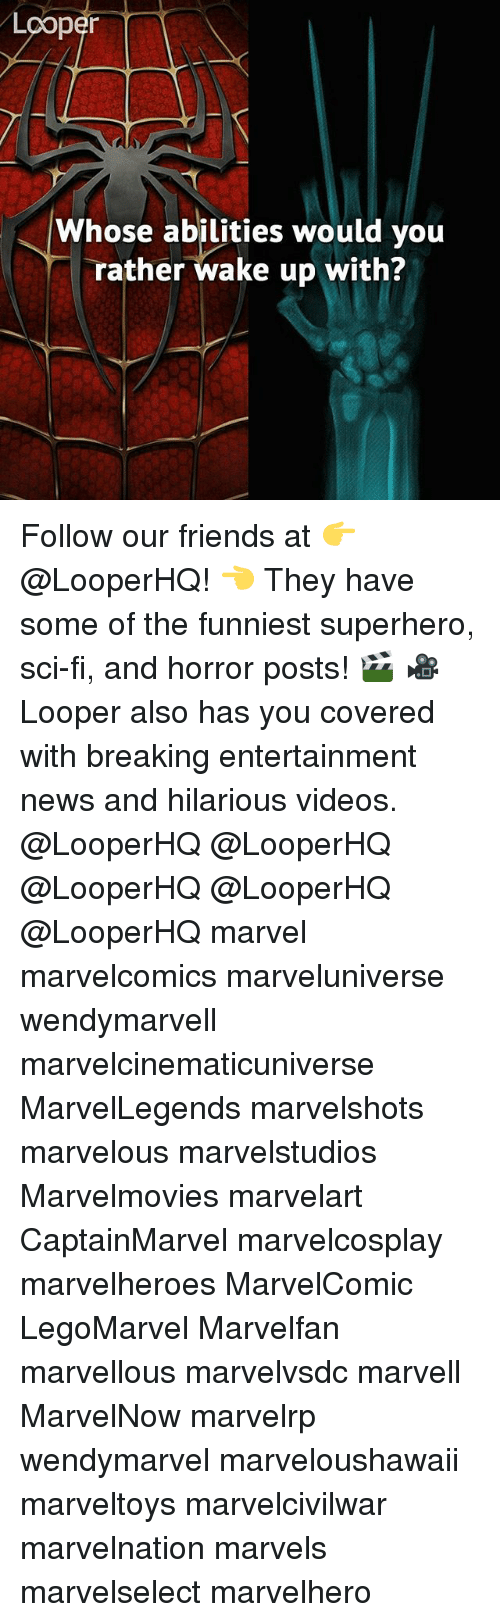 marvell: Looper  Whose abilities would you  rather wake up with Follow our friends at 👉 @LooperHQ! 👈 They have some of the funniest superhero, sci-fi, and horror posts! 🎬 🎥 Looper also has you covered with breaking entertainment news and hilarious videos. @LooperHQ @LooperHQ @LooperHQ @LooperHQ @LooperHQ marvel marvelcomics marveluniverse wendymarvell marvelcinematicuniverse MarvelLegends marvelshots marvelous marvelstudios Marvelmovies marvelart CaptainMarvel marvelcosplay marvelheroes MarvelComic LegoMarvel Marvelfan marvellous marvelvsdc marvell MarvelNow marvelrp wendymarvel marveloushawaii marveltoys marvelcivilwar marvelnation marvels marvelselect marvelhero